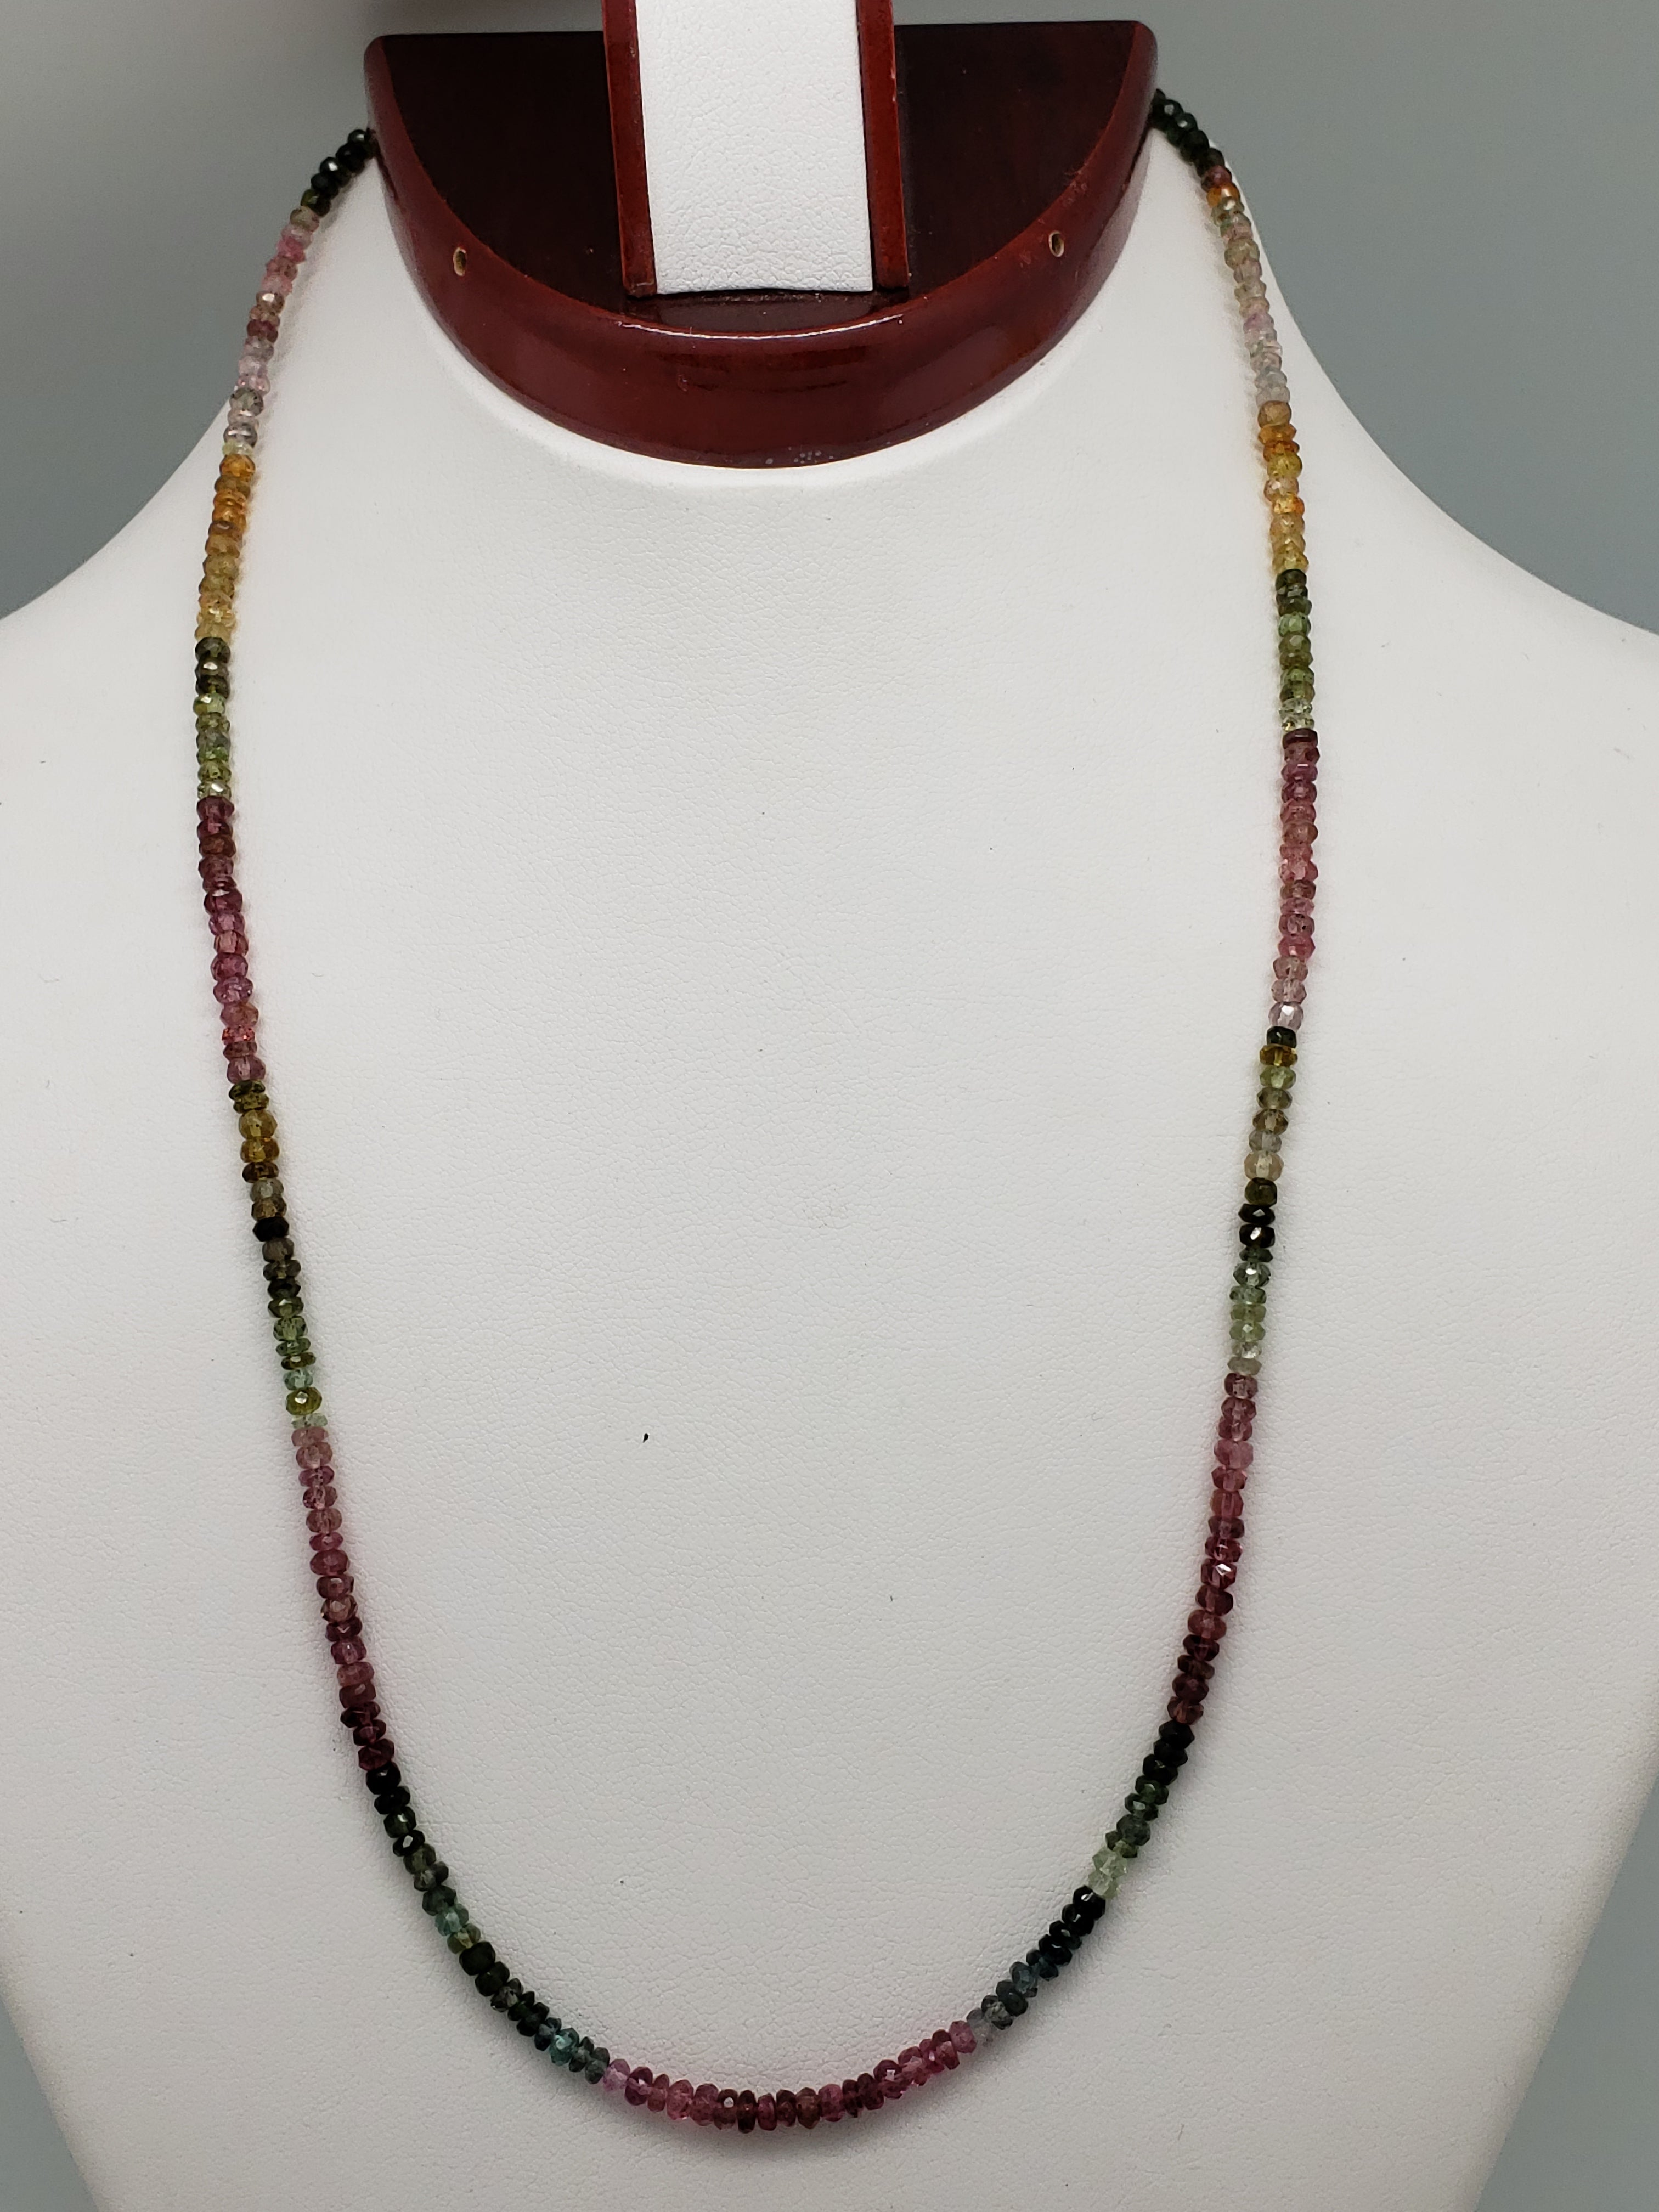 Shaded Watermelon Tourmaline Necklace, 18 inch with Sterling Silver Clasp & Chain